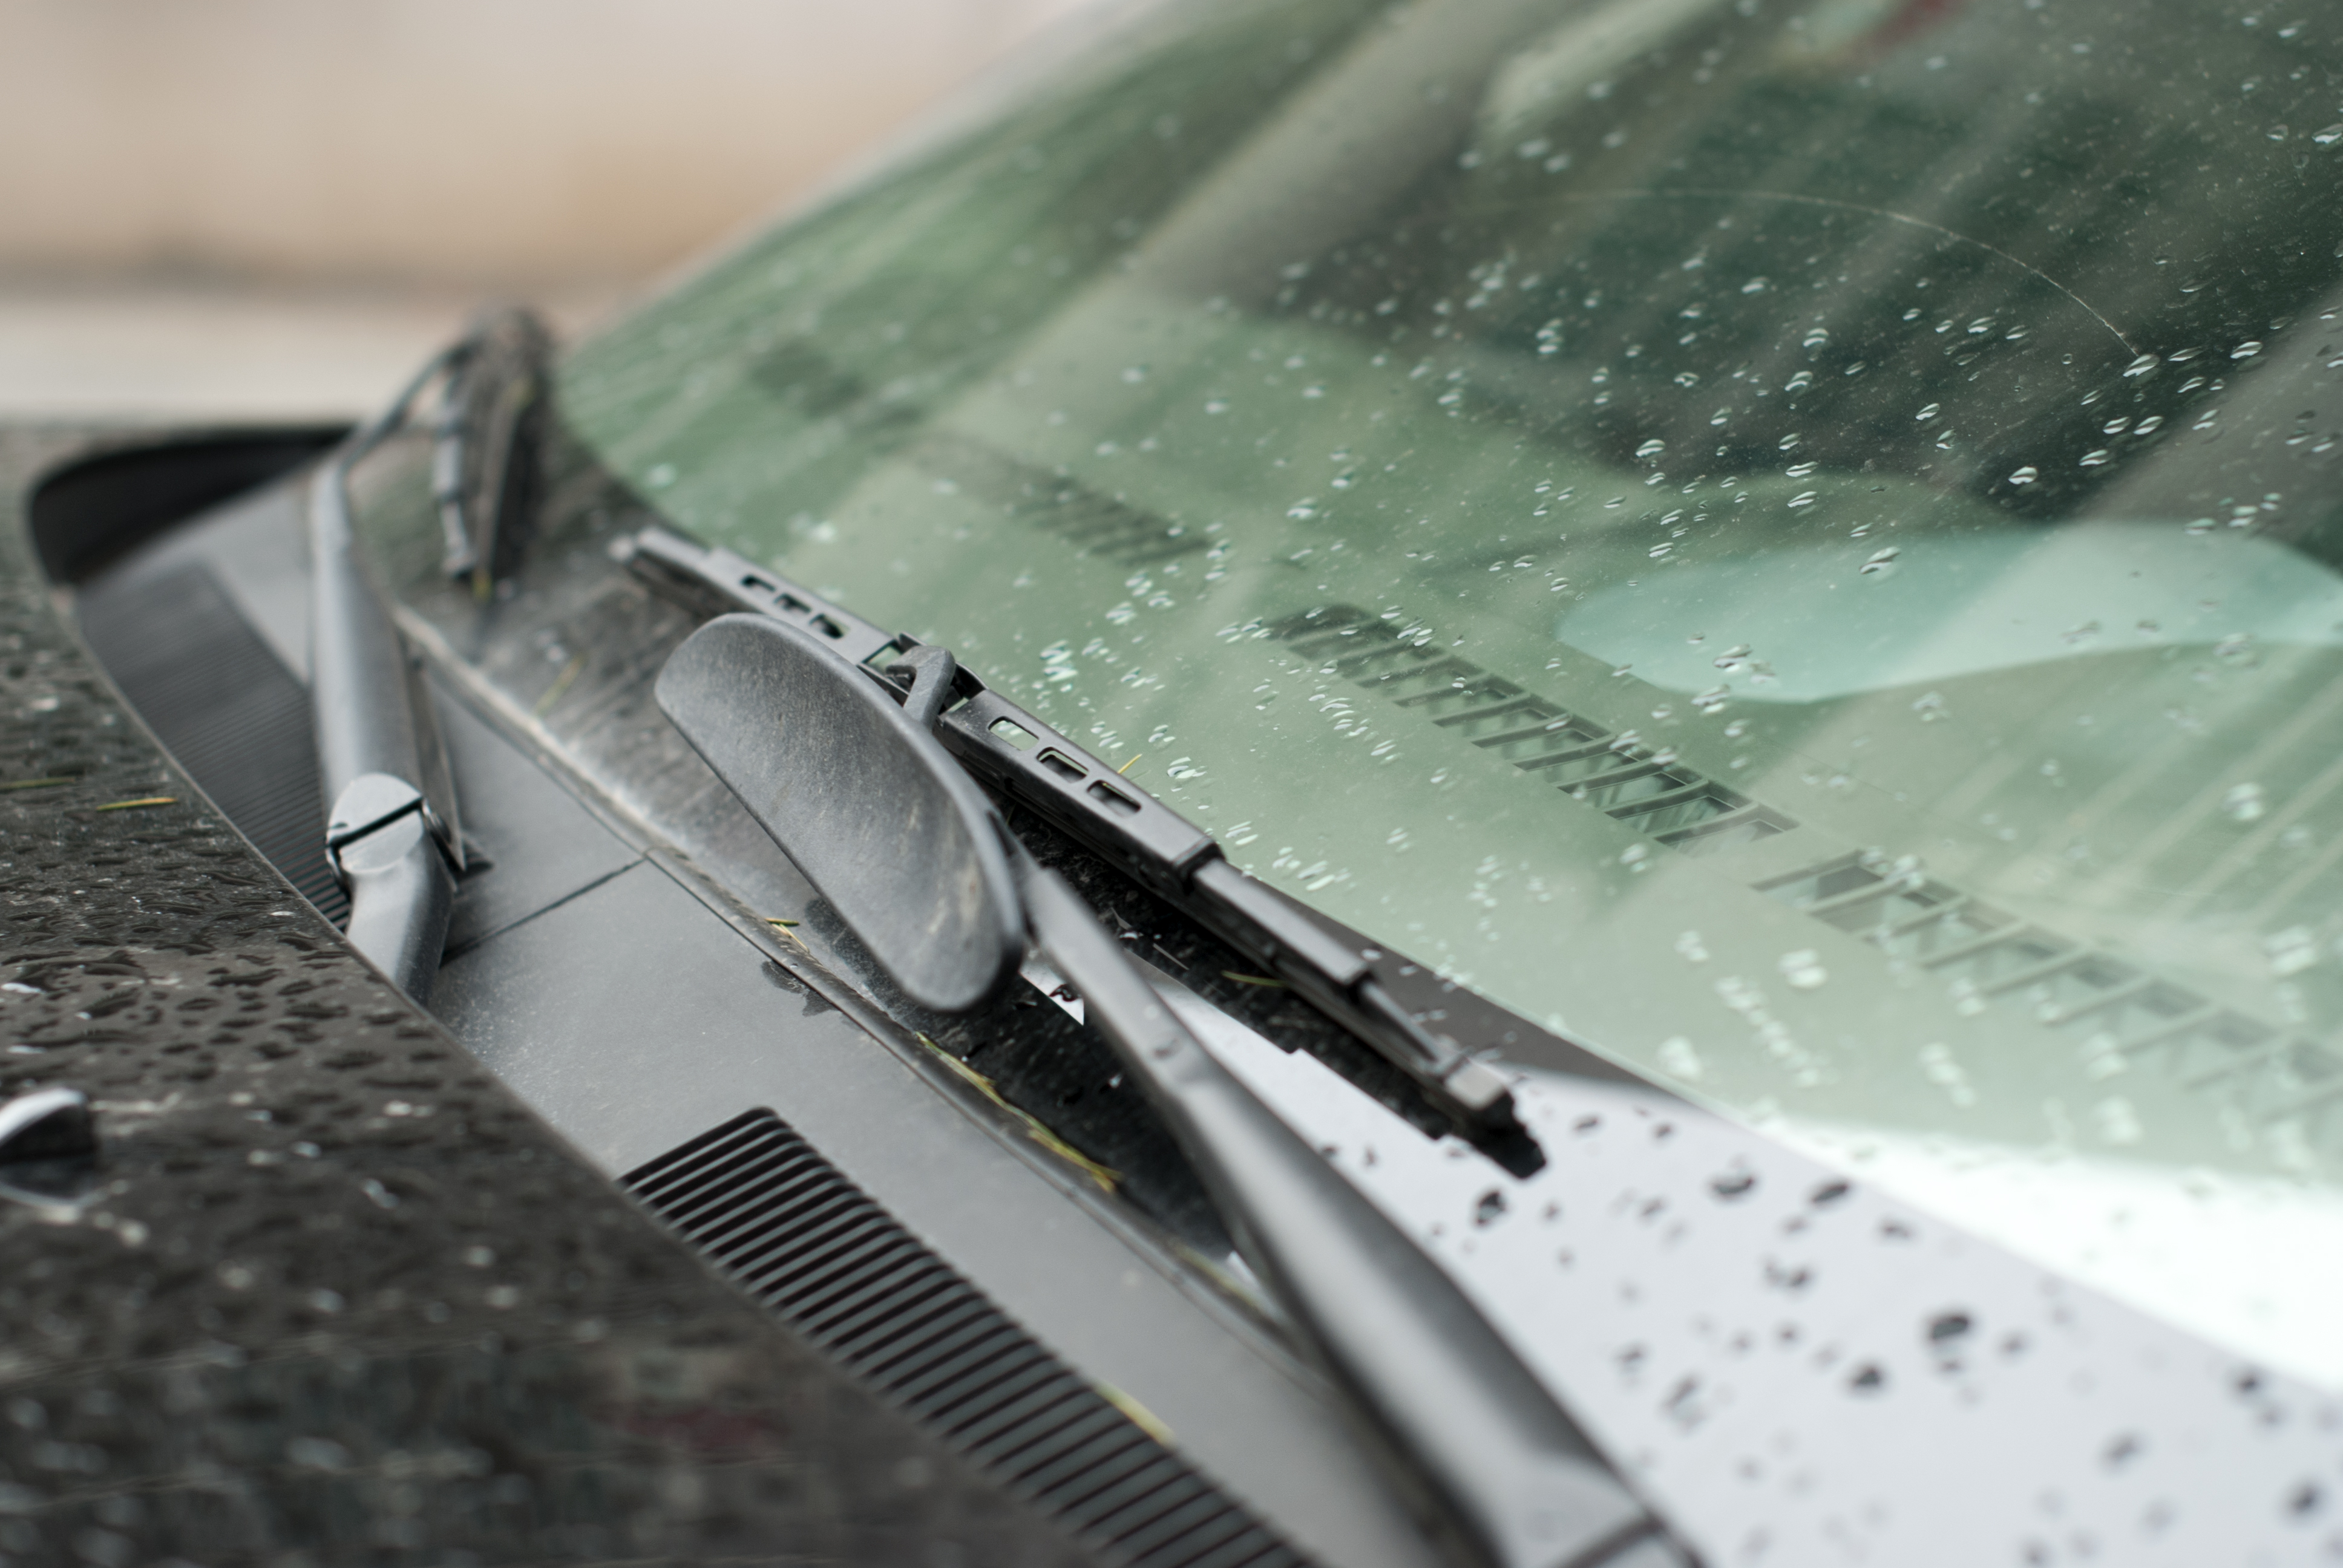 Wiper Blades and Rainy Day Repairs